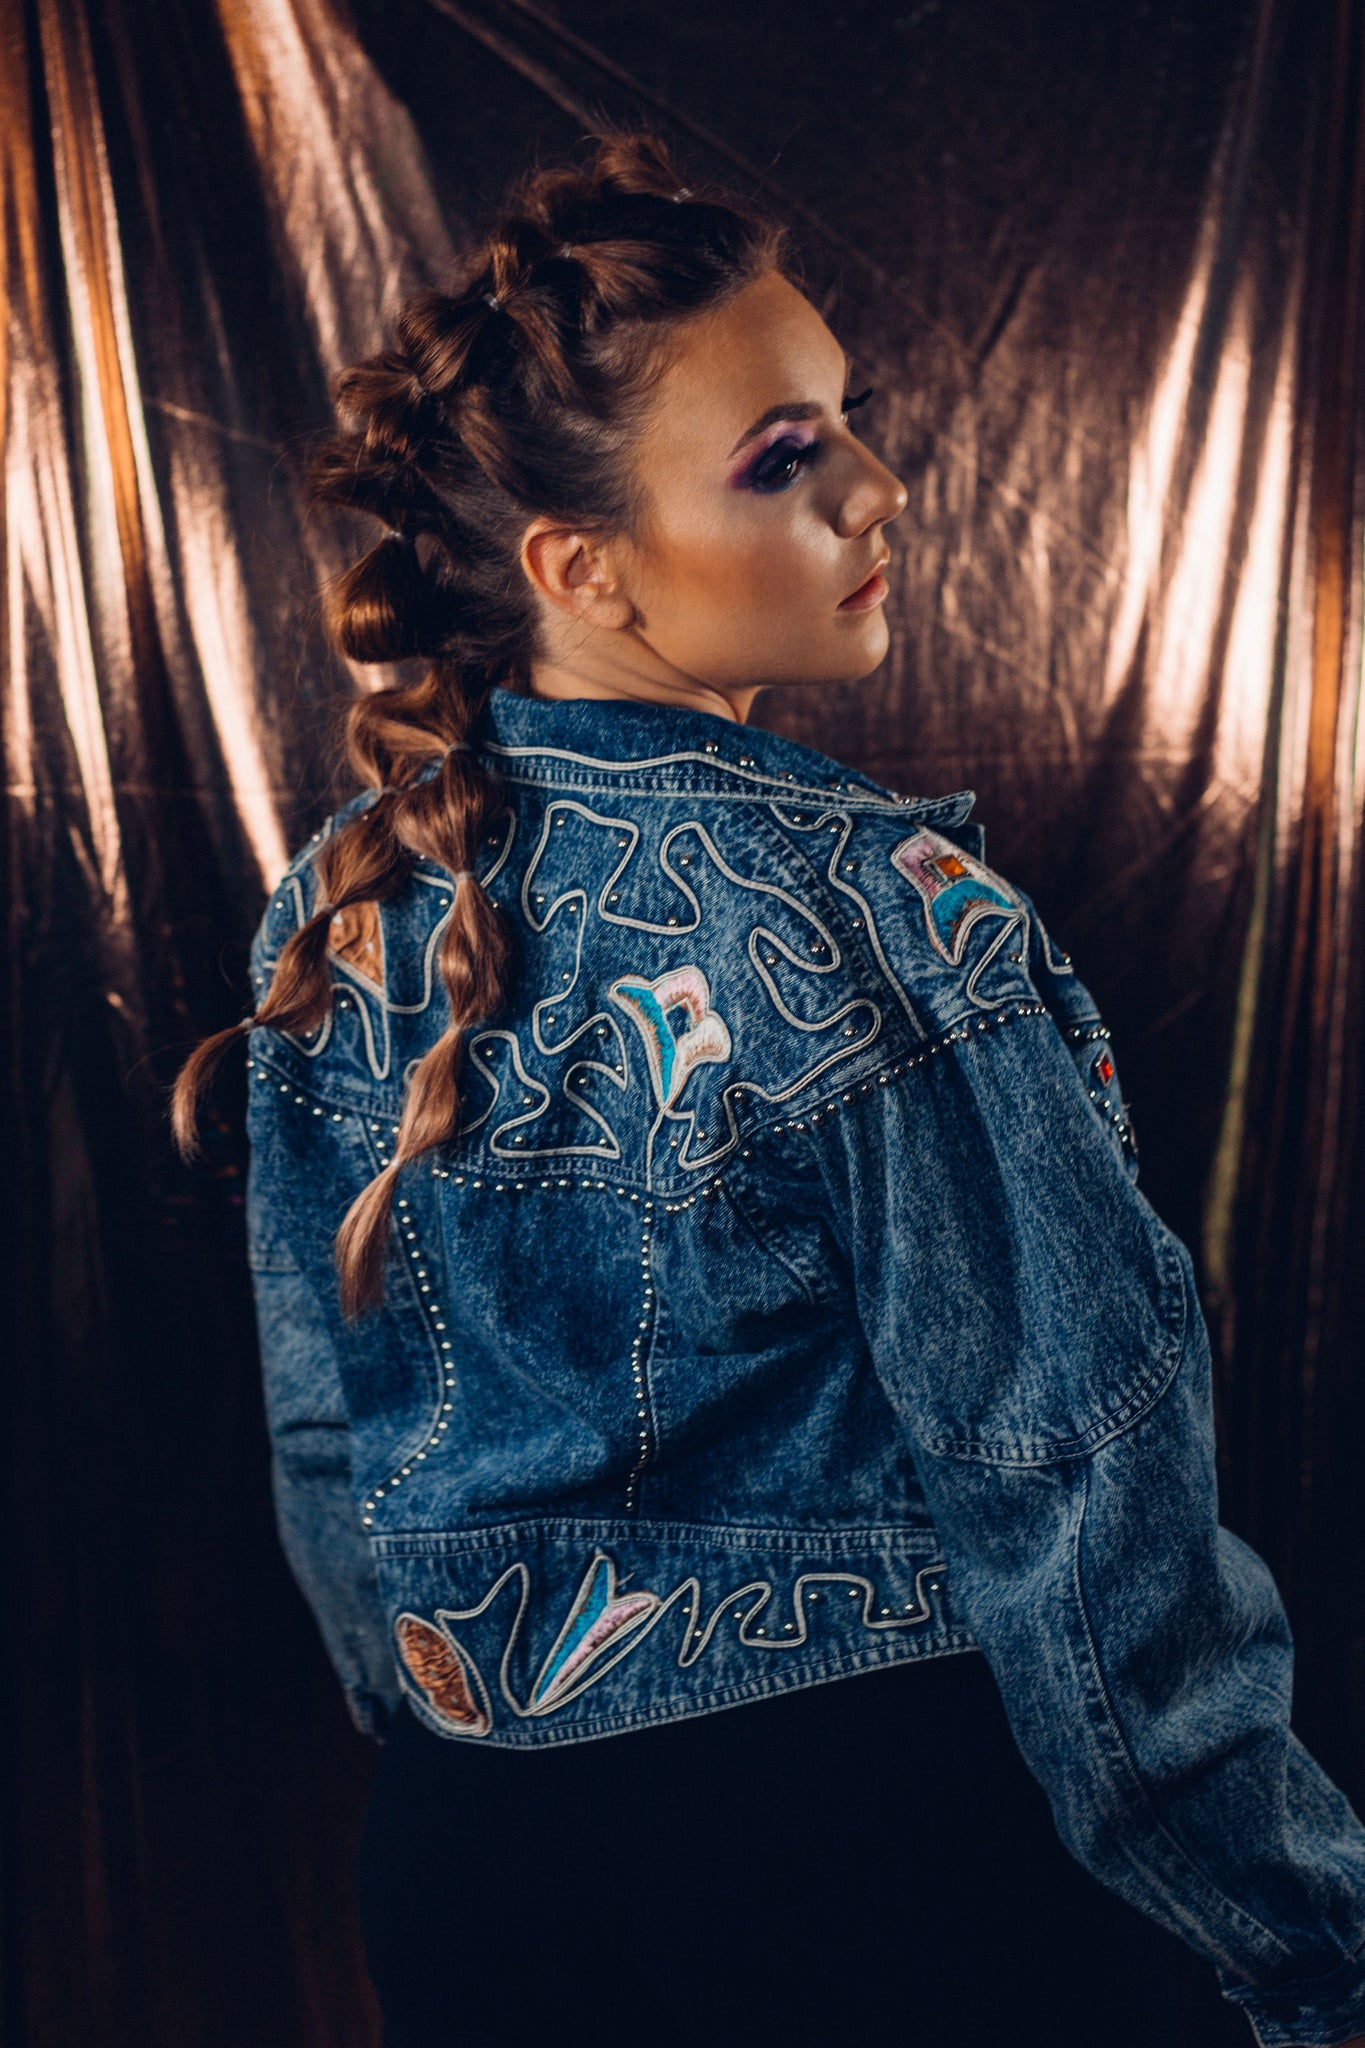 Vintage Main Jeans Embroidered Denim Crop Top Jacket - Gypsie Souls